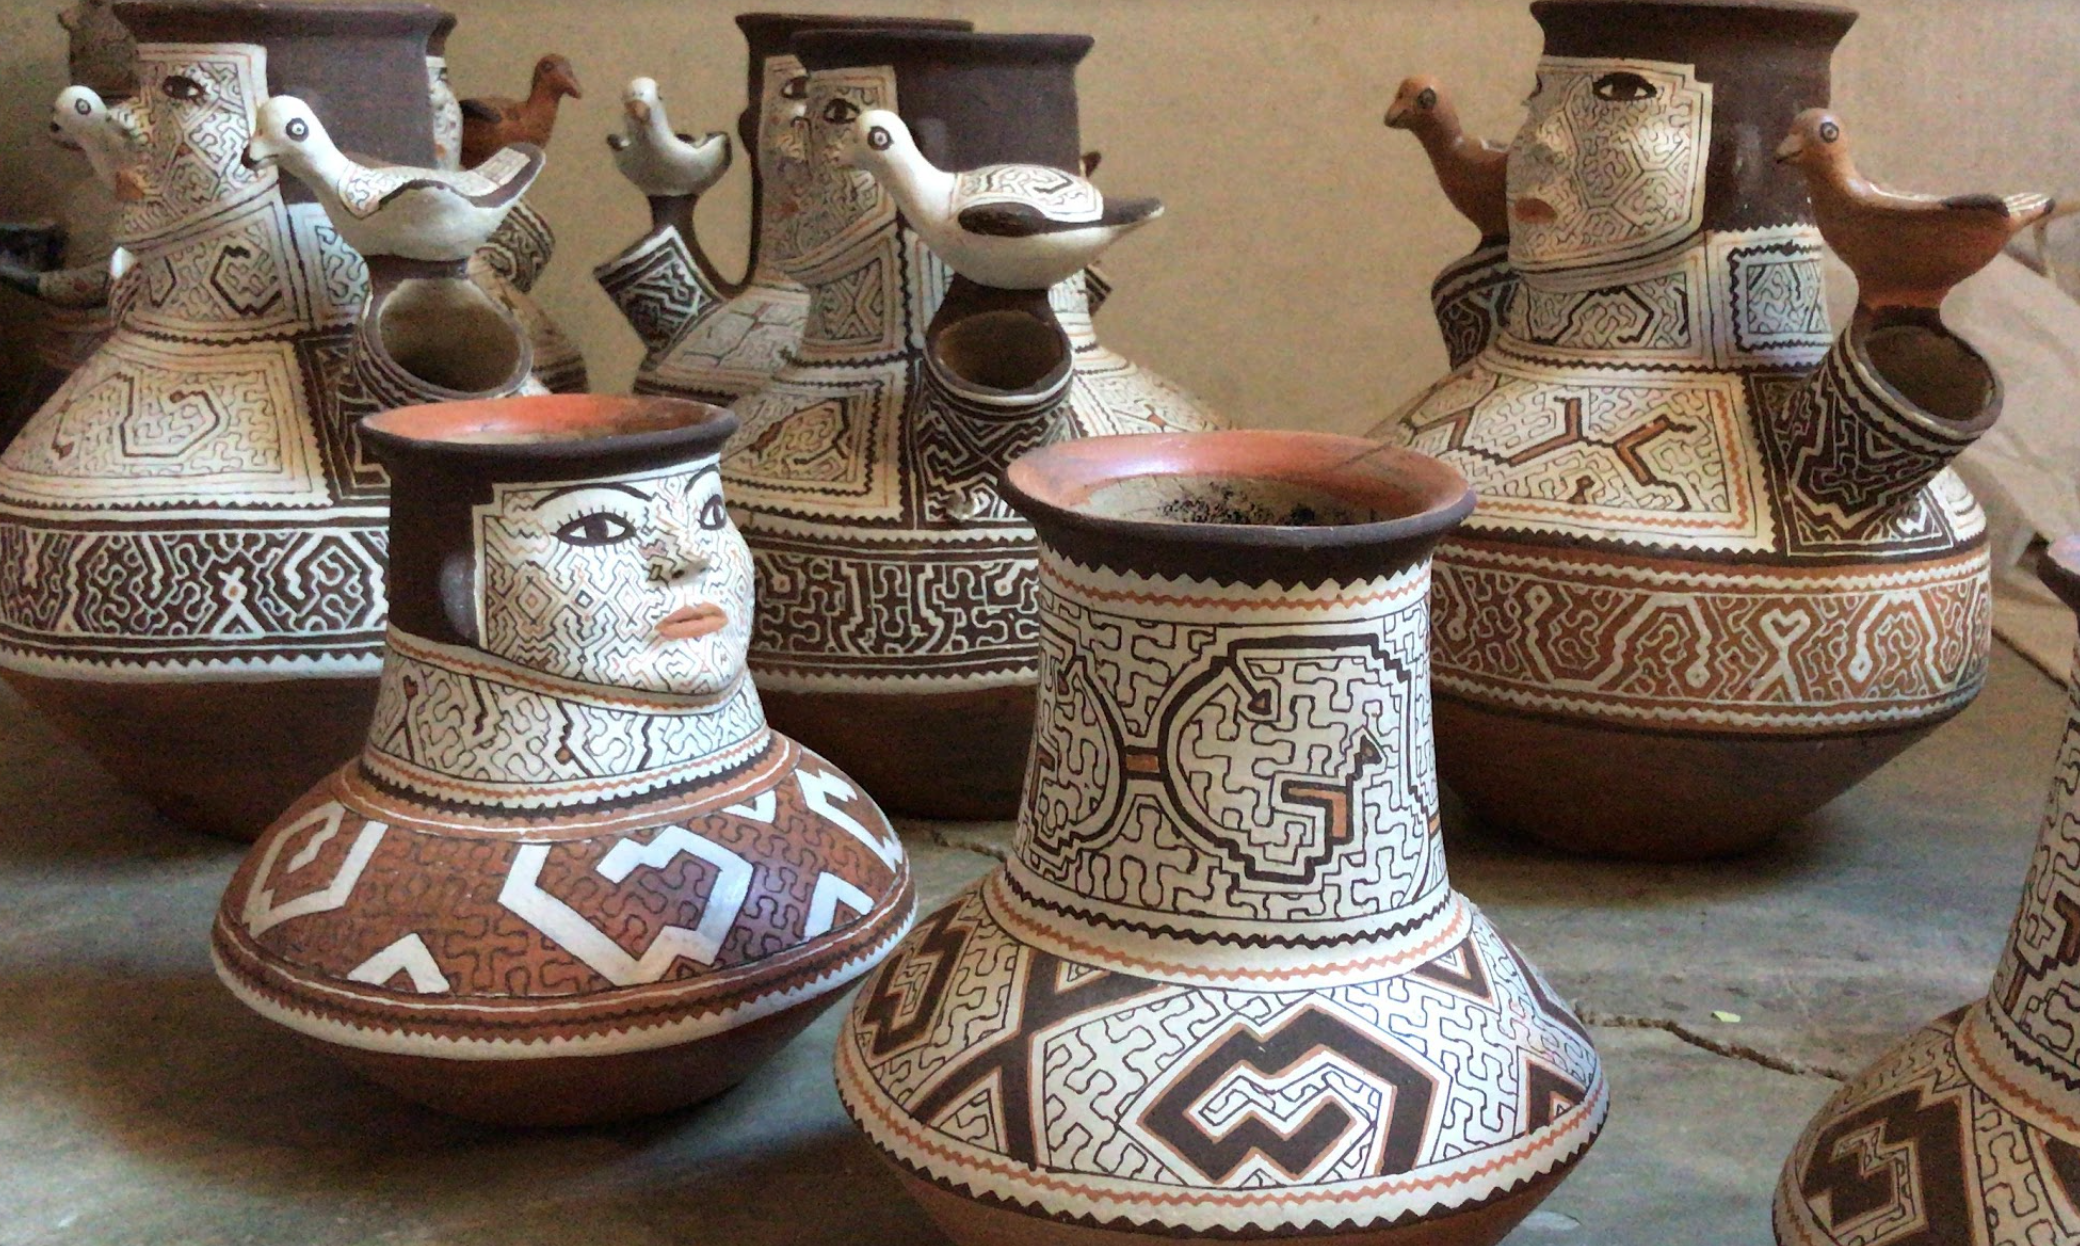 Some of the sculptures that I was talking about. I believe that these, more than anything else, showcases the Shipibo tradition and best represent what values and ideas that they hold dear. They are mainly used for decorative purposes.